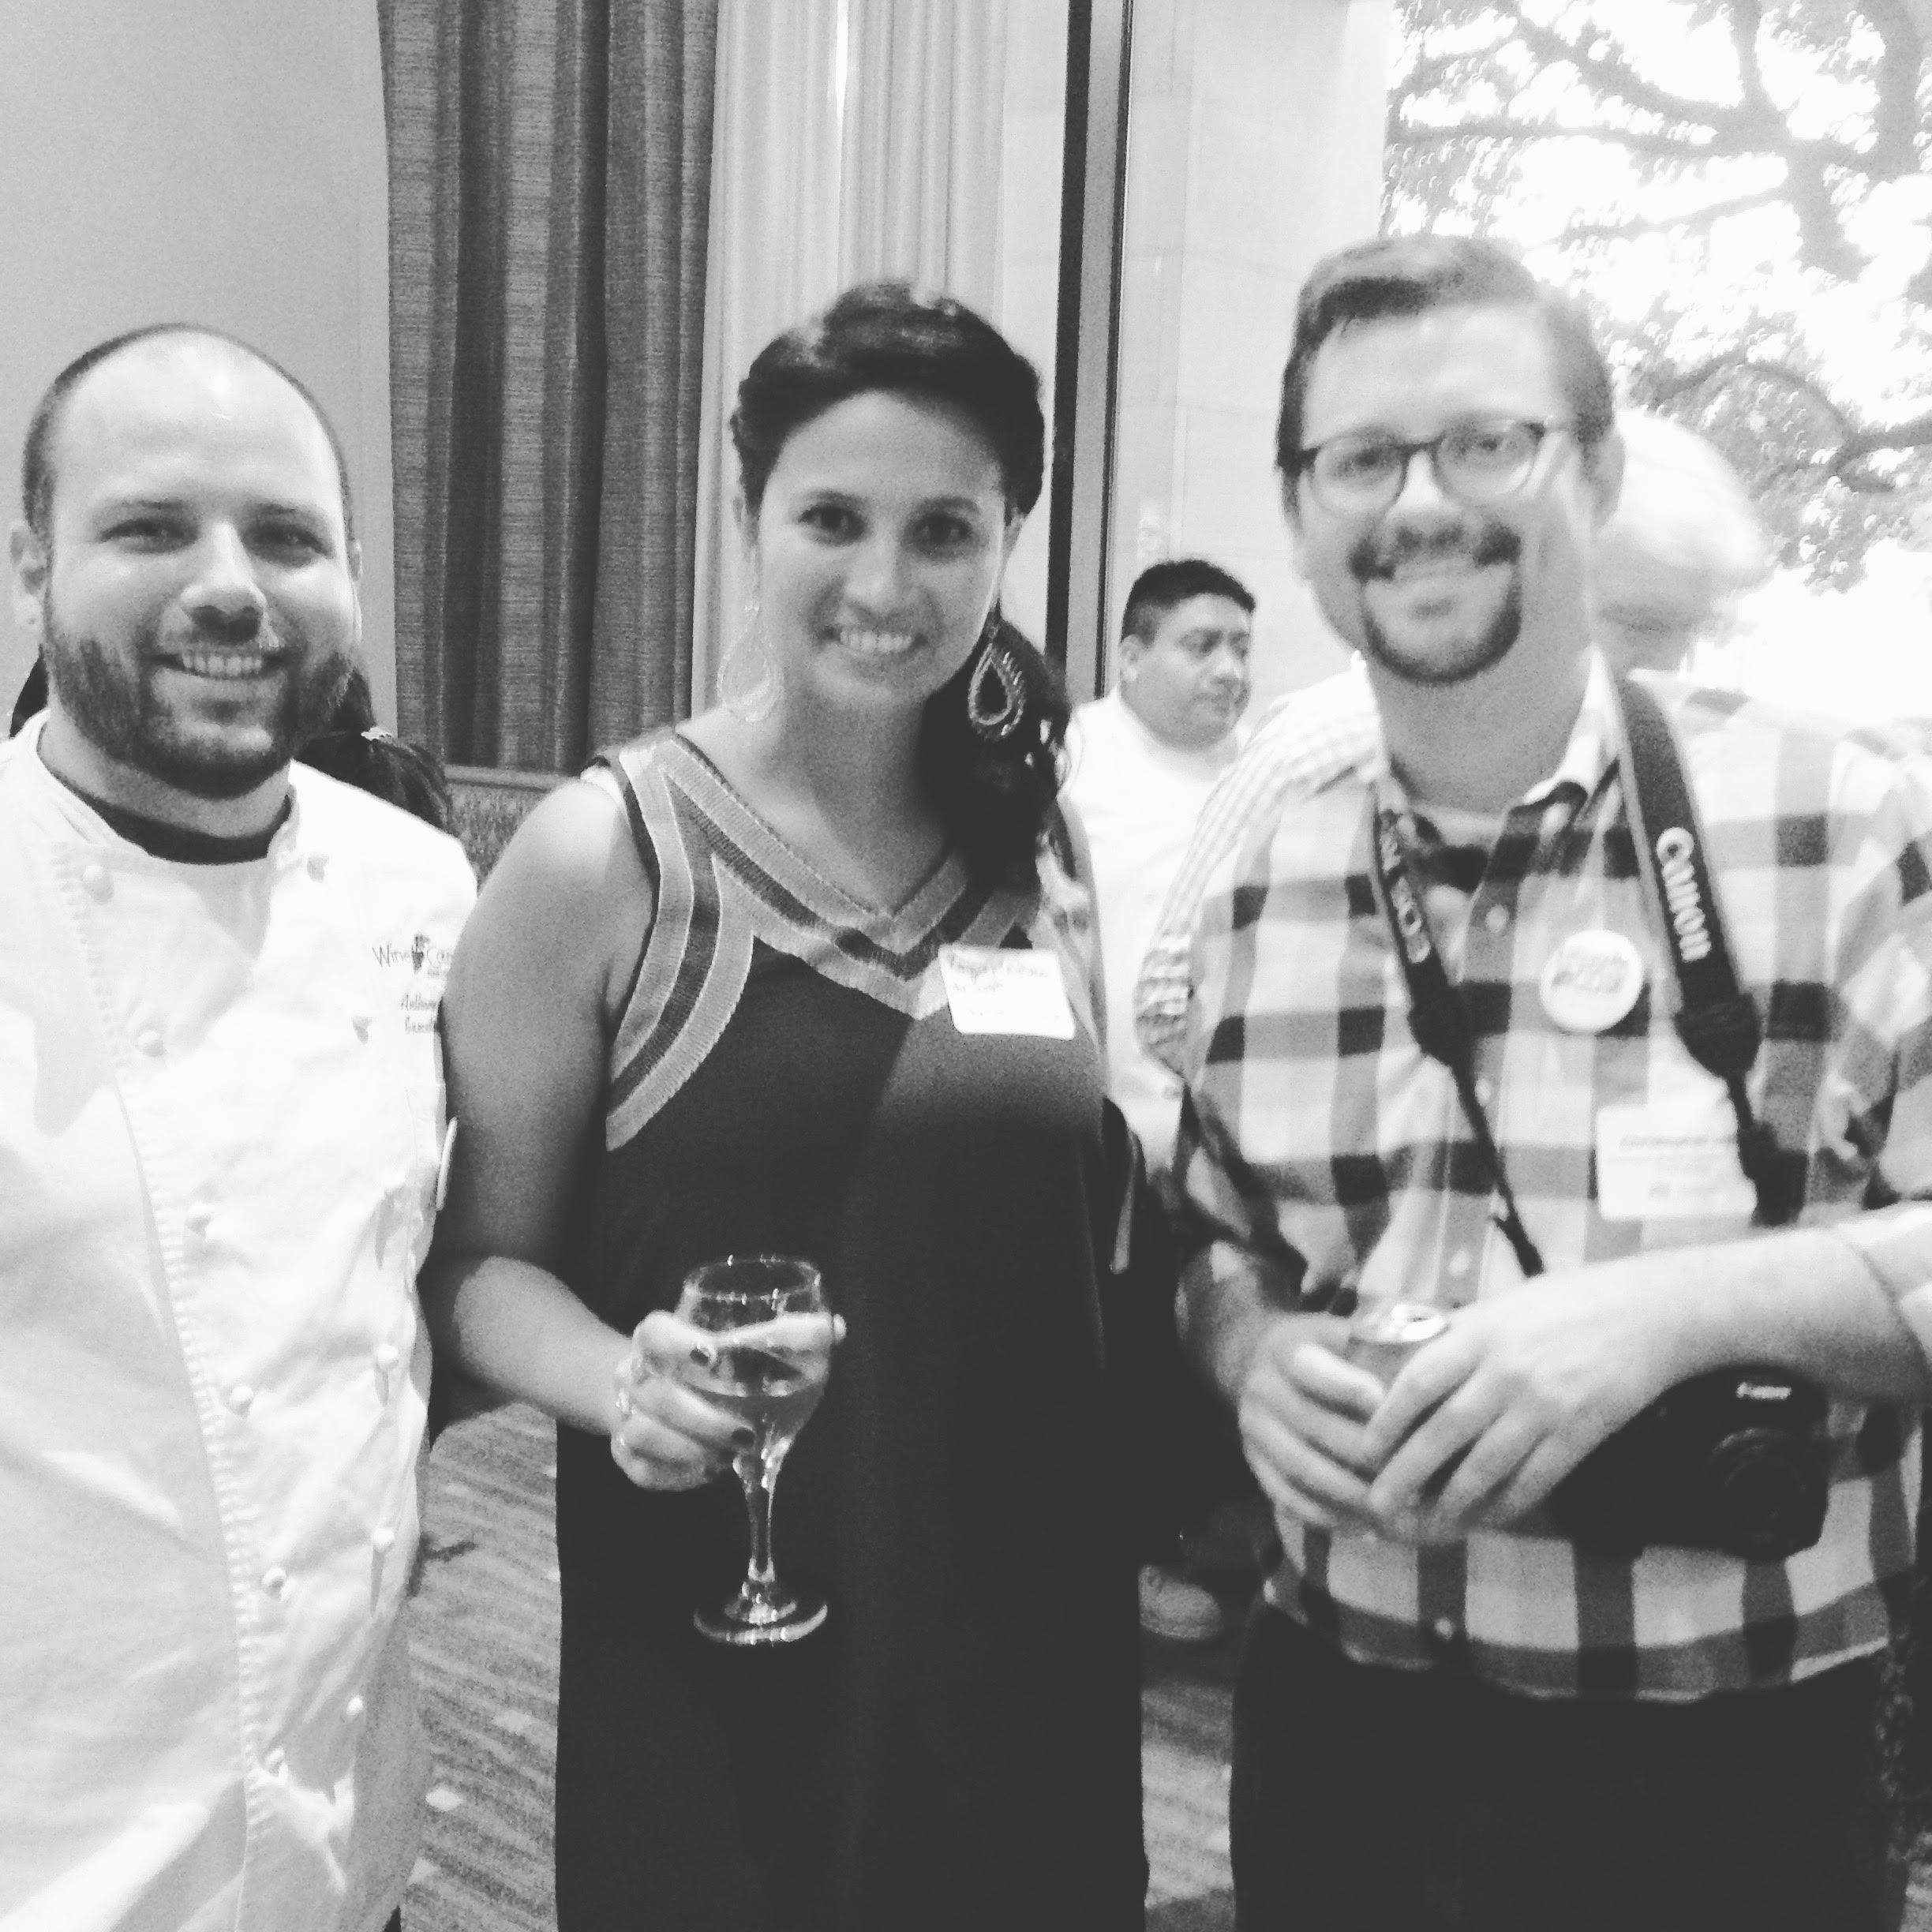 from left: Chef Felan, ME, and Chris Jay from the  Shreveport-Bossier Convention & Tourist Bureau